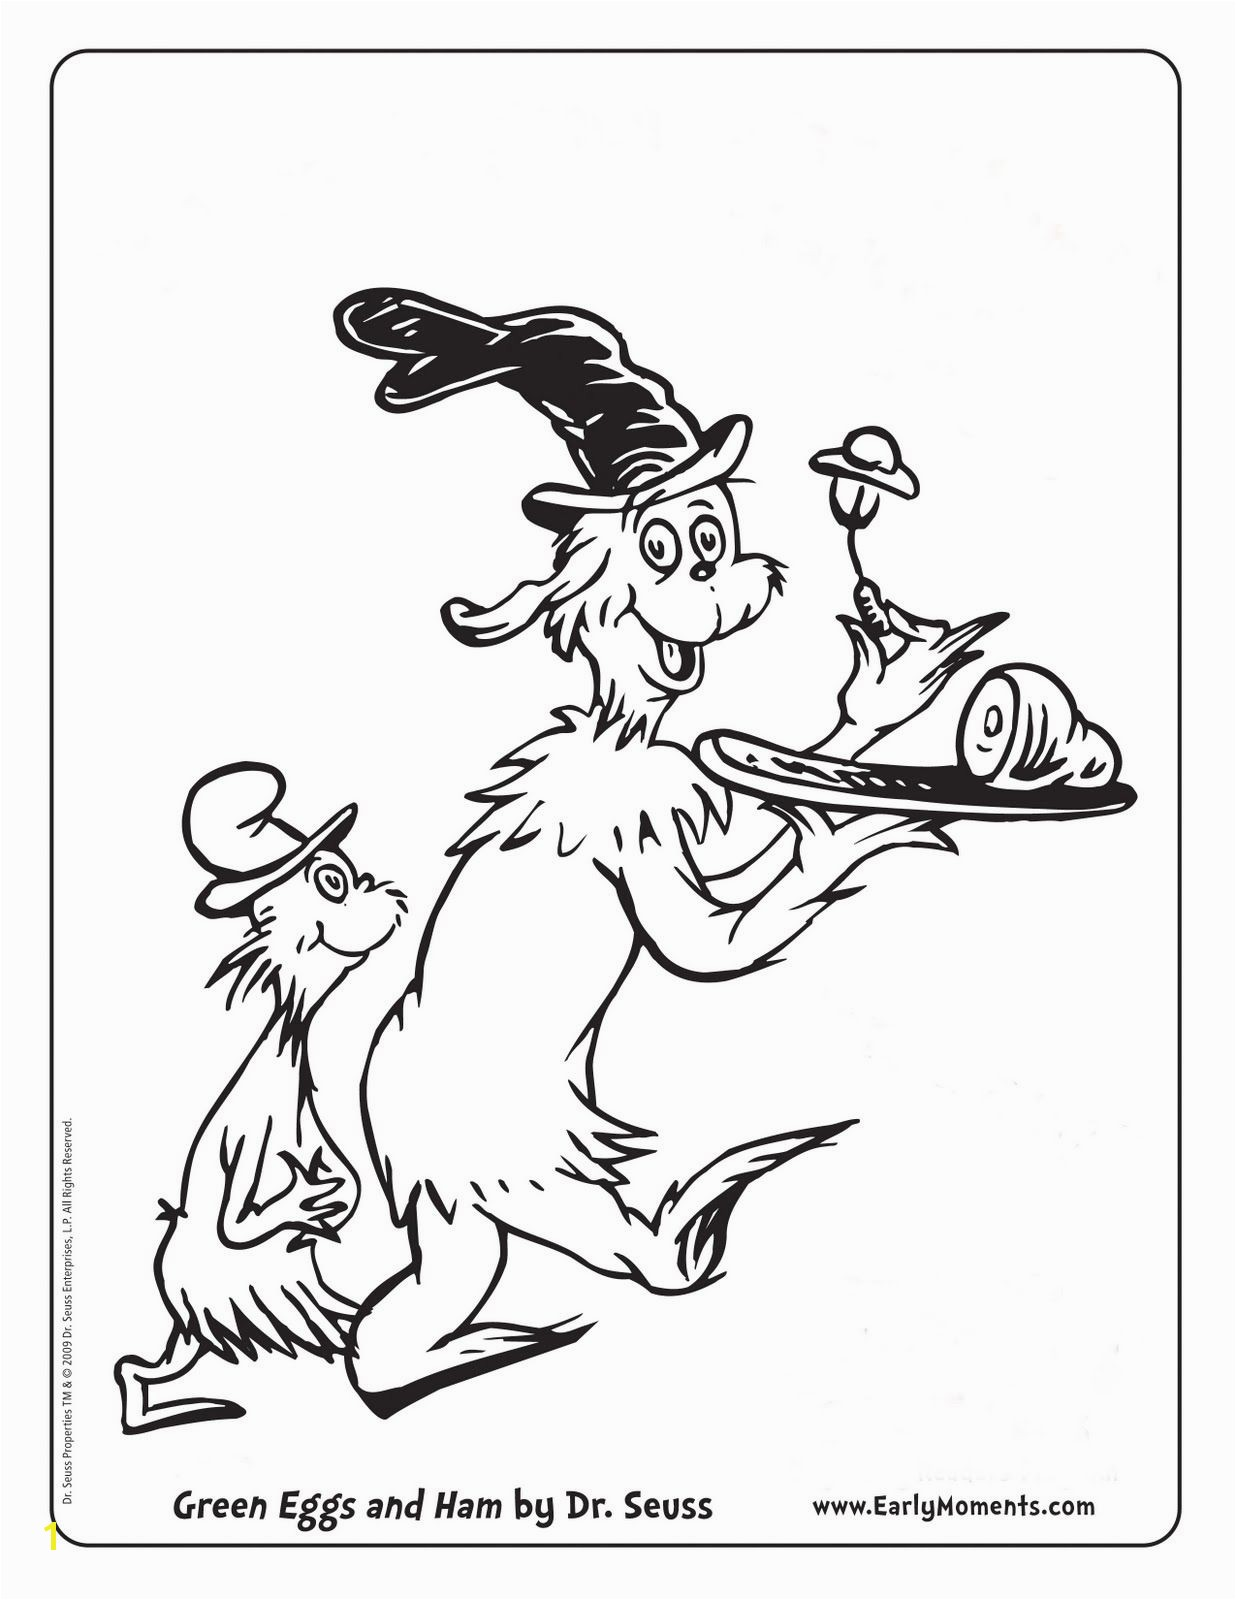 Dr seuss coloring page green eggs and ham Dr Suess Pinterest